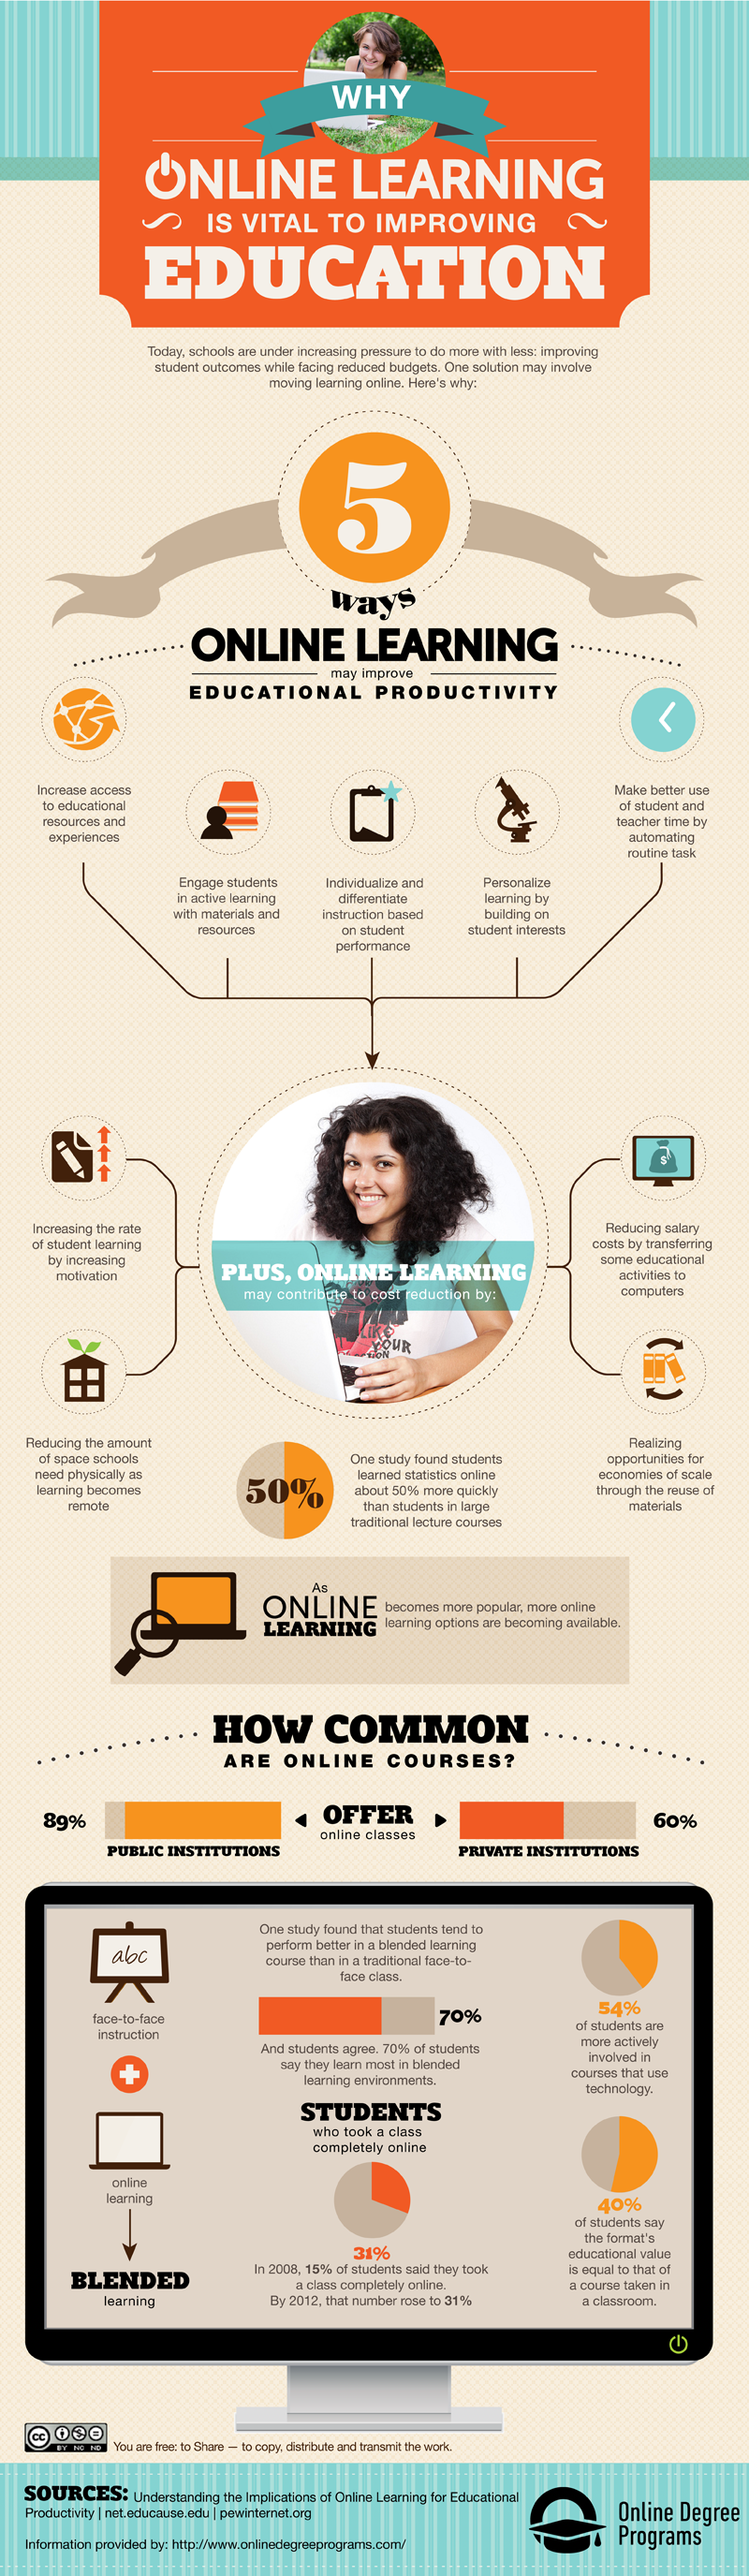 What Are The Benefits Of An Online Education